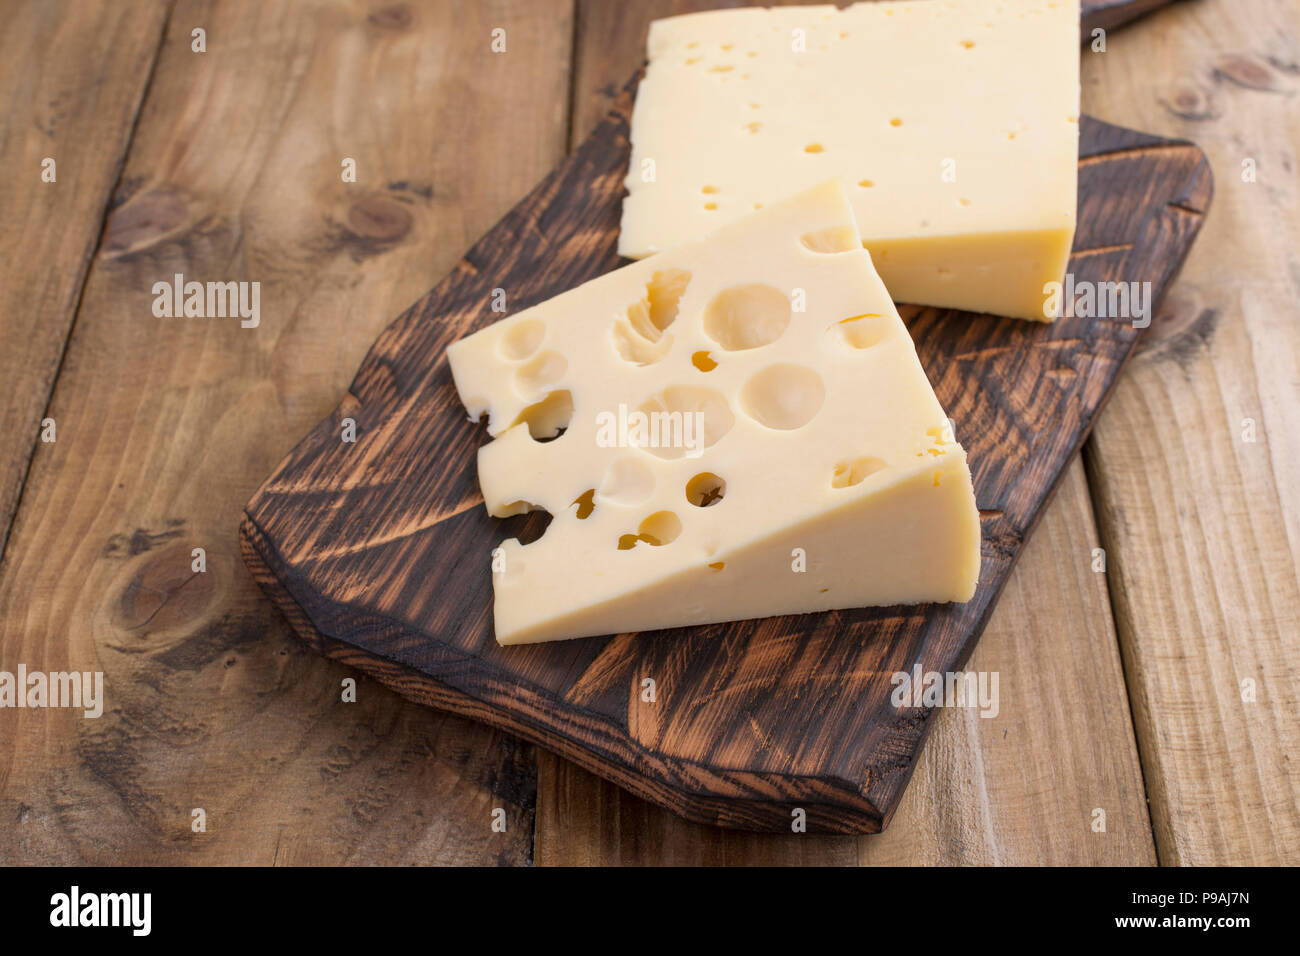 Dutch cheese with holes on a wooden old board. Vintage photo. Dairy. Free space for text. Copy space - Stock Image